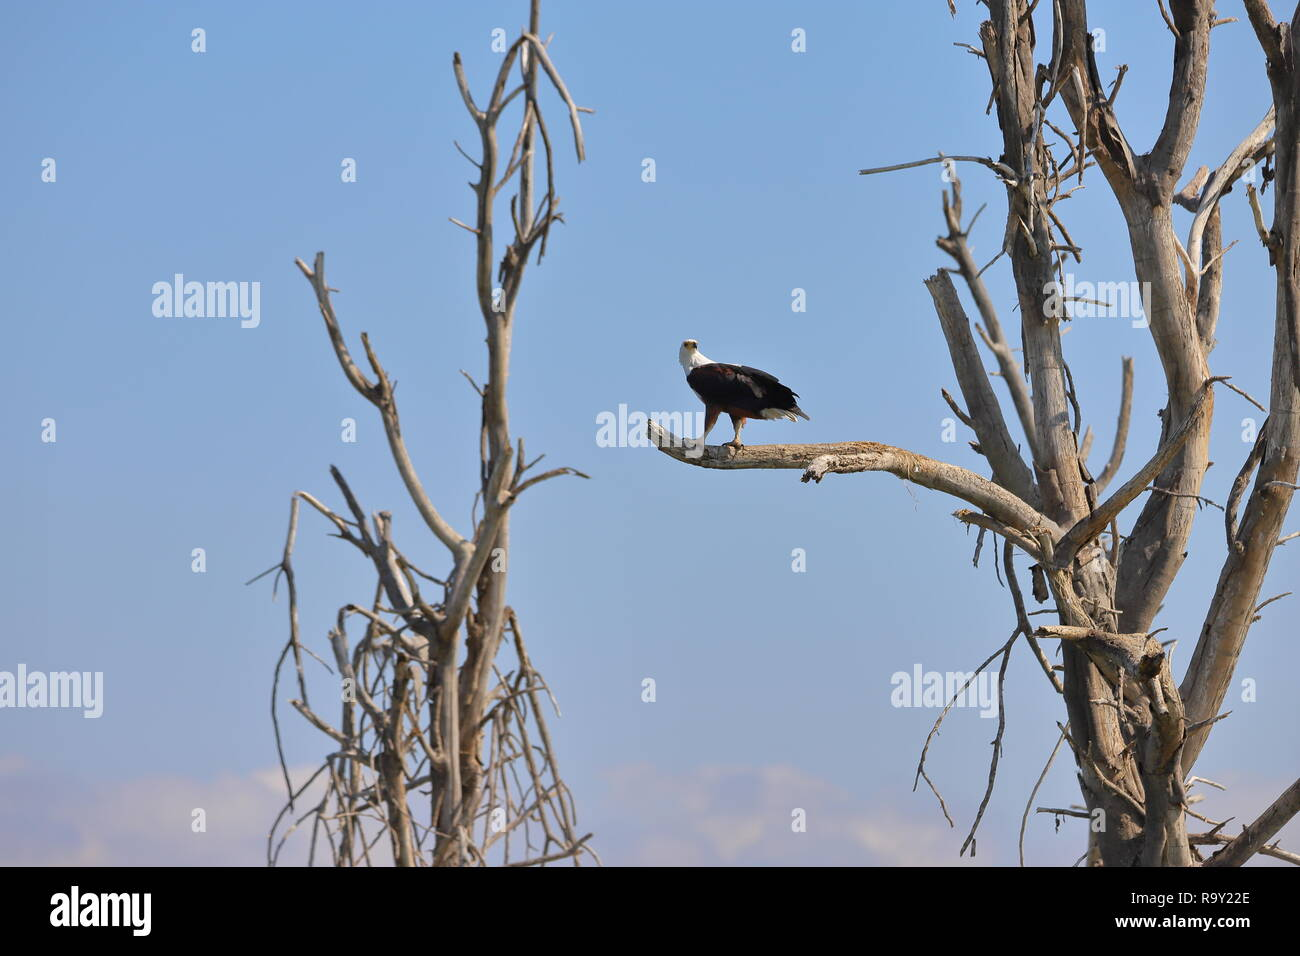 African Fish Eagle in Kenia Stockfoto